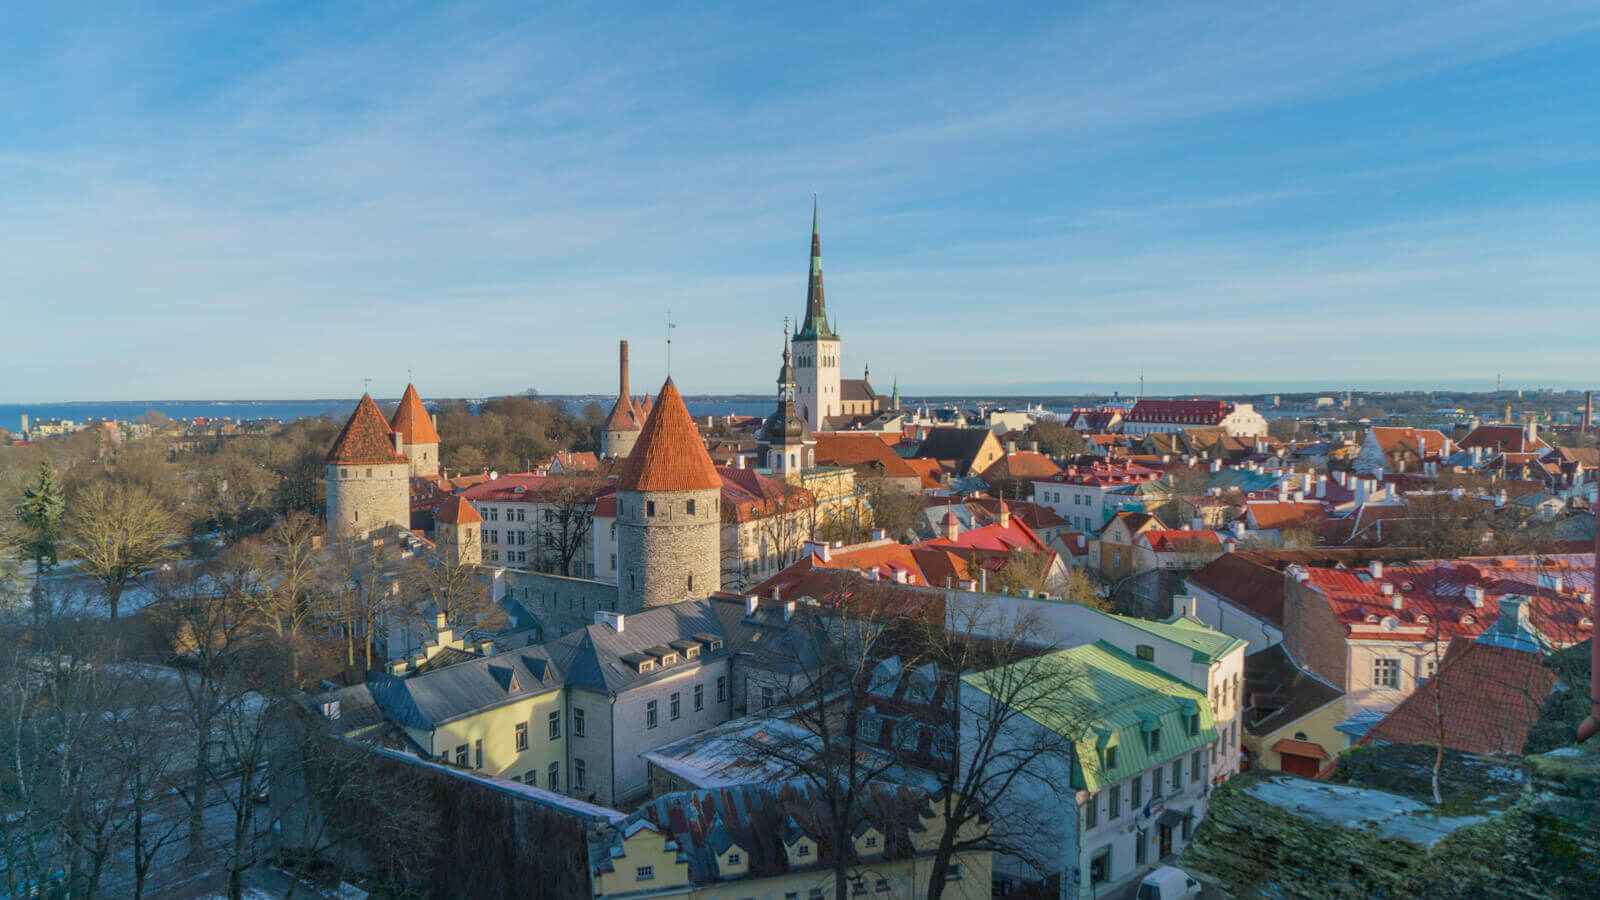 The Old Town of Tallinn is a UNESCO world heritage site and walking the cobbled streets here is like stepping back into medieval Europe